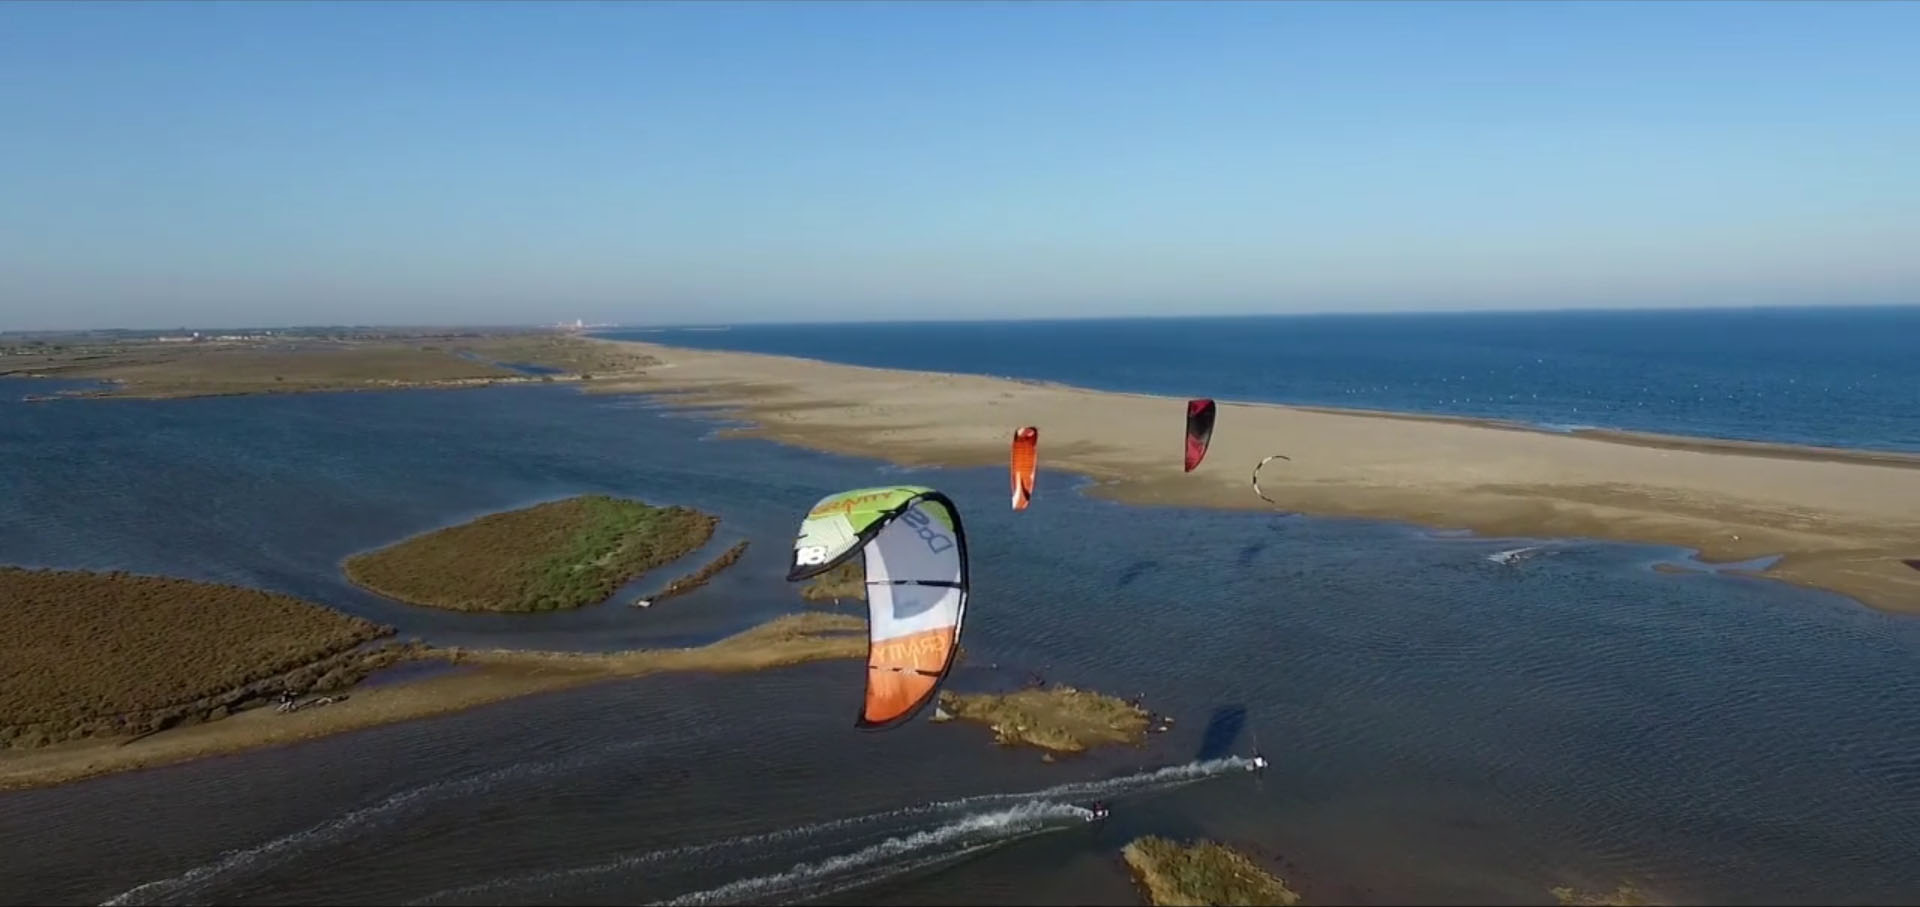 Vidéo officielle de la Coupe du Monde Junior de Kiteboard Freestyle